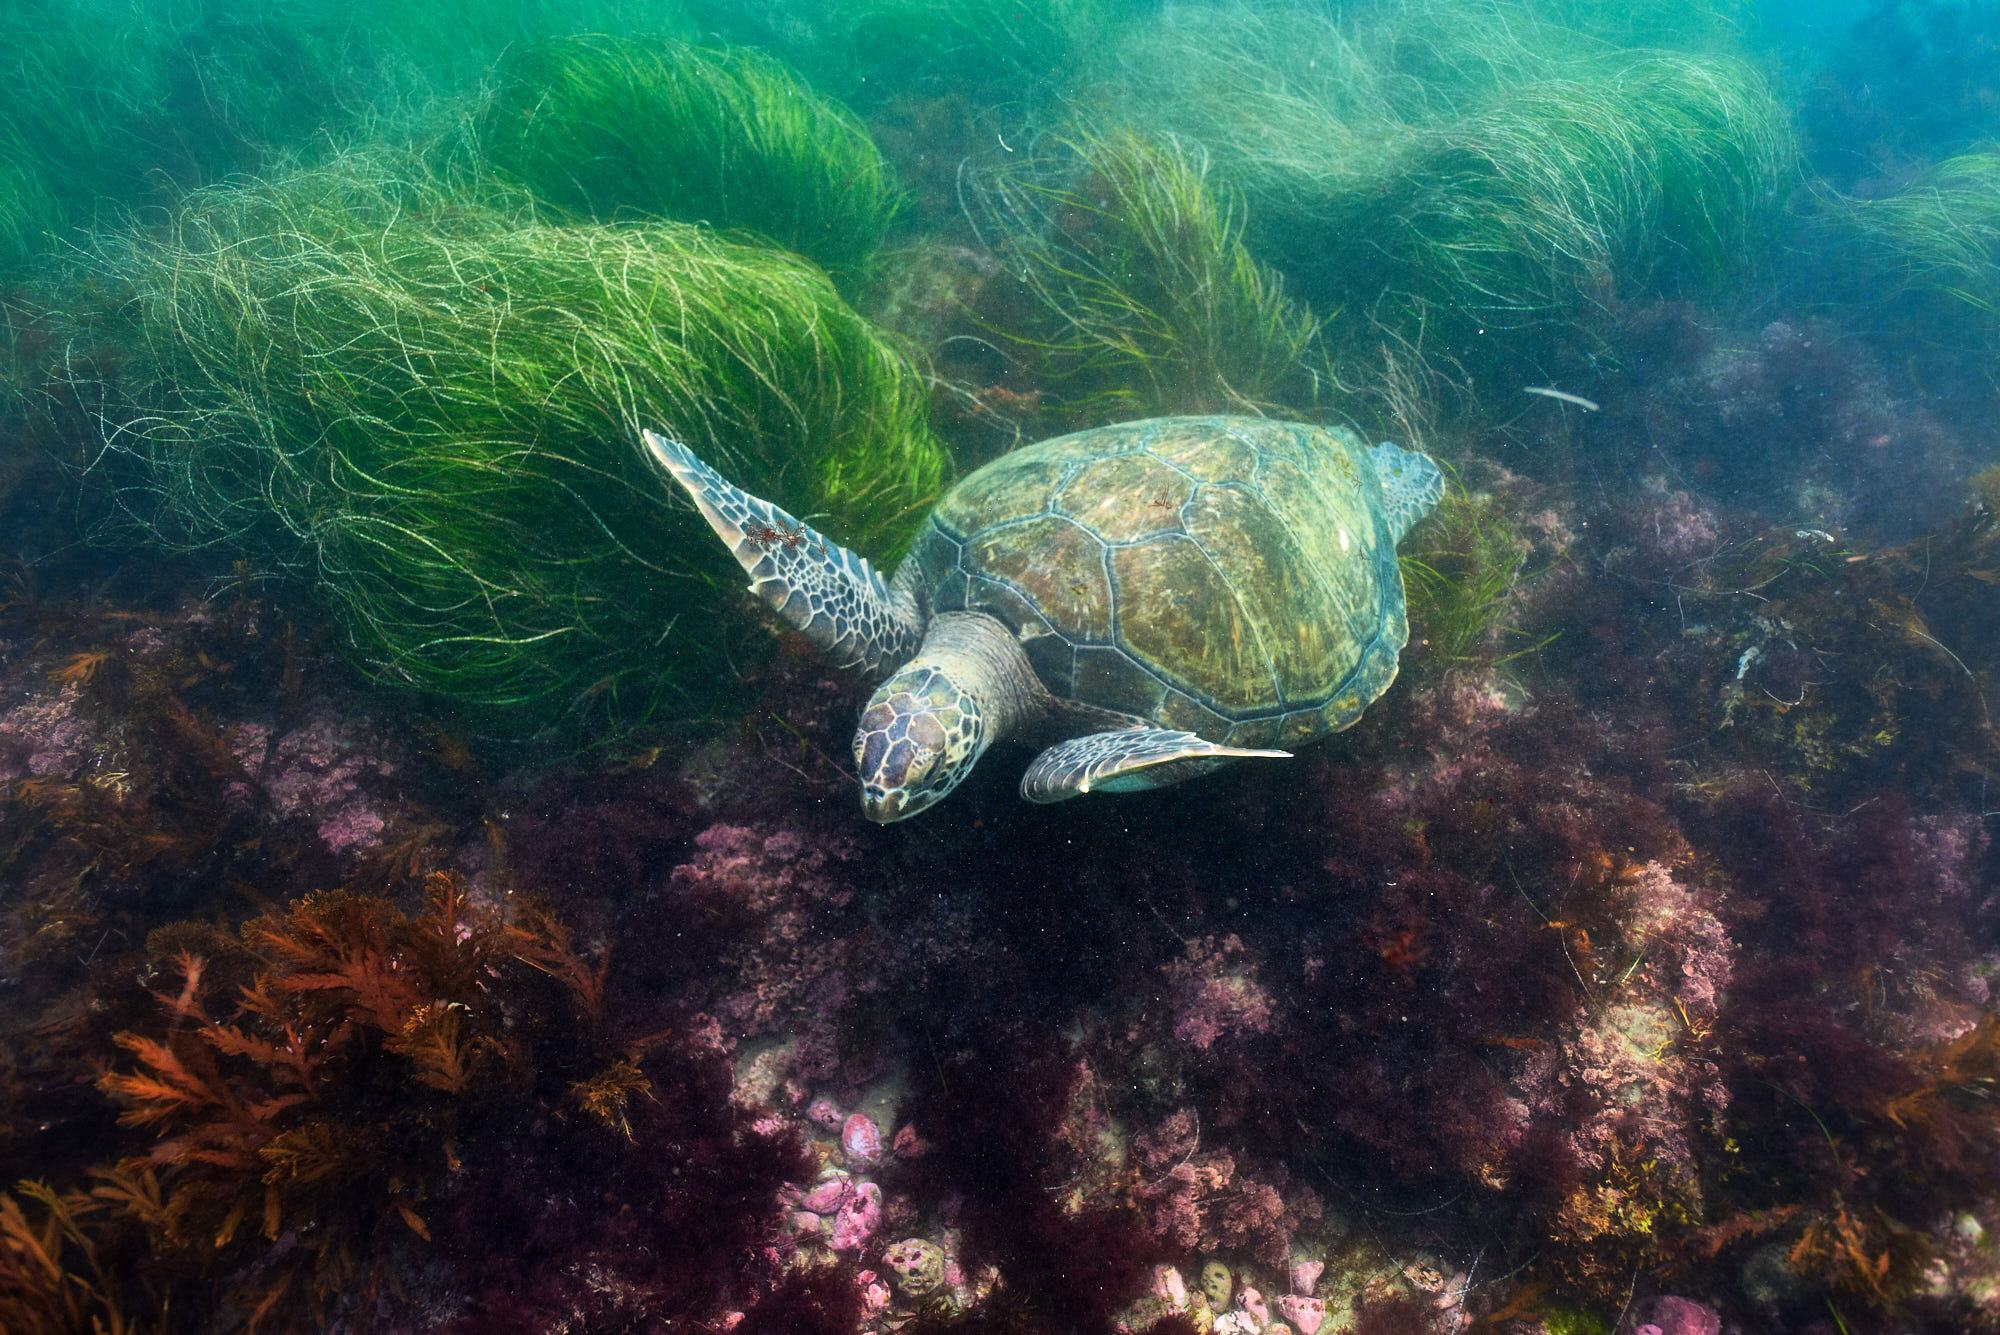 A Green Sea Turtle Swims over Grass and Kelp